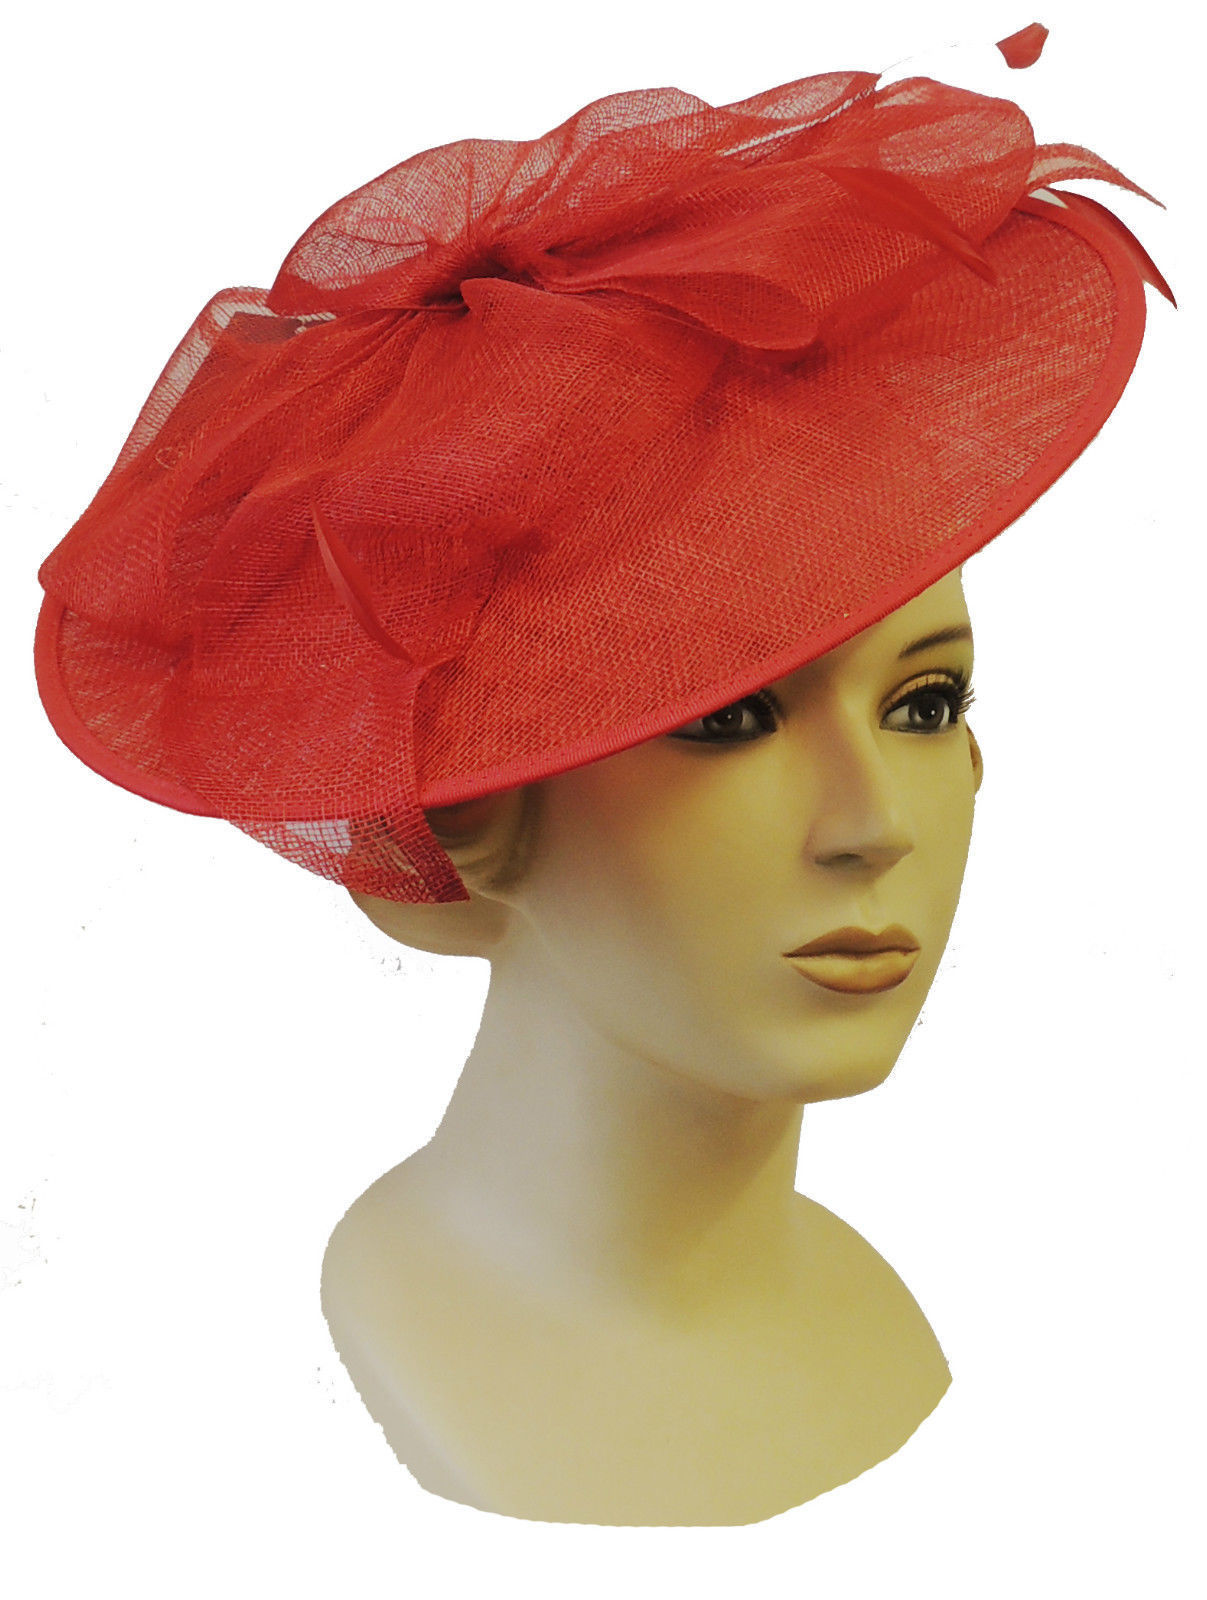 1940s Hats History    New Ladies Vtg 1940s 50s Glamour Retro Sweetheart  Pin-up Fascinator Hatina Hat $39.99 AT vintagedancer.com